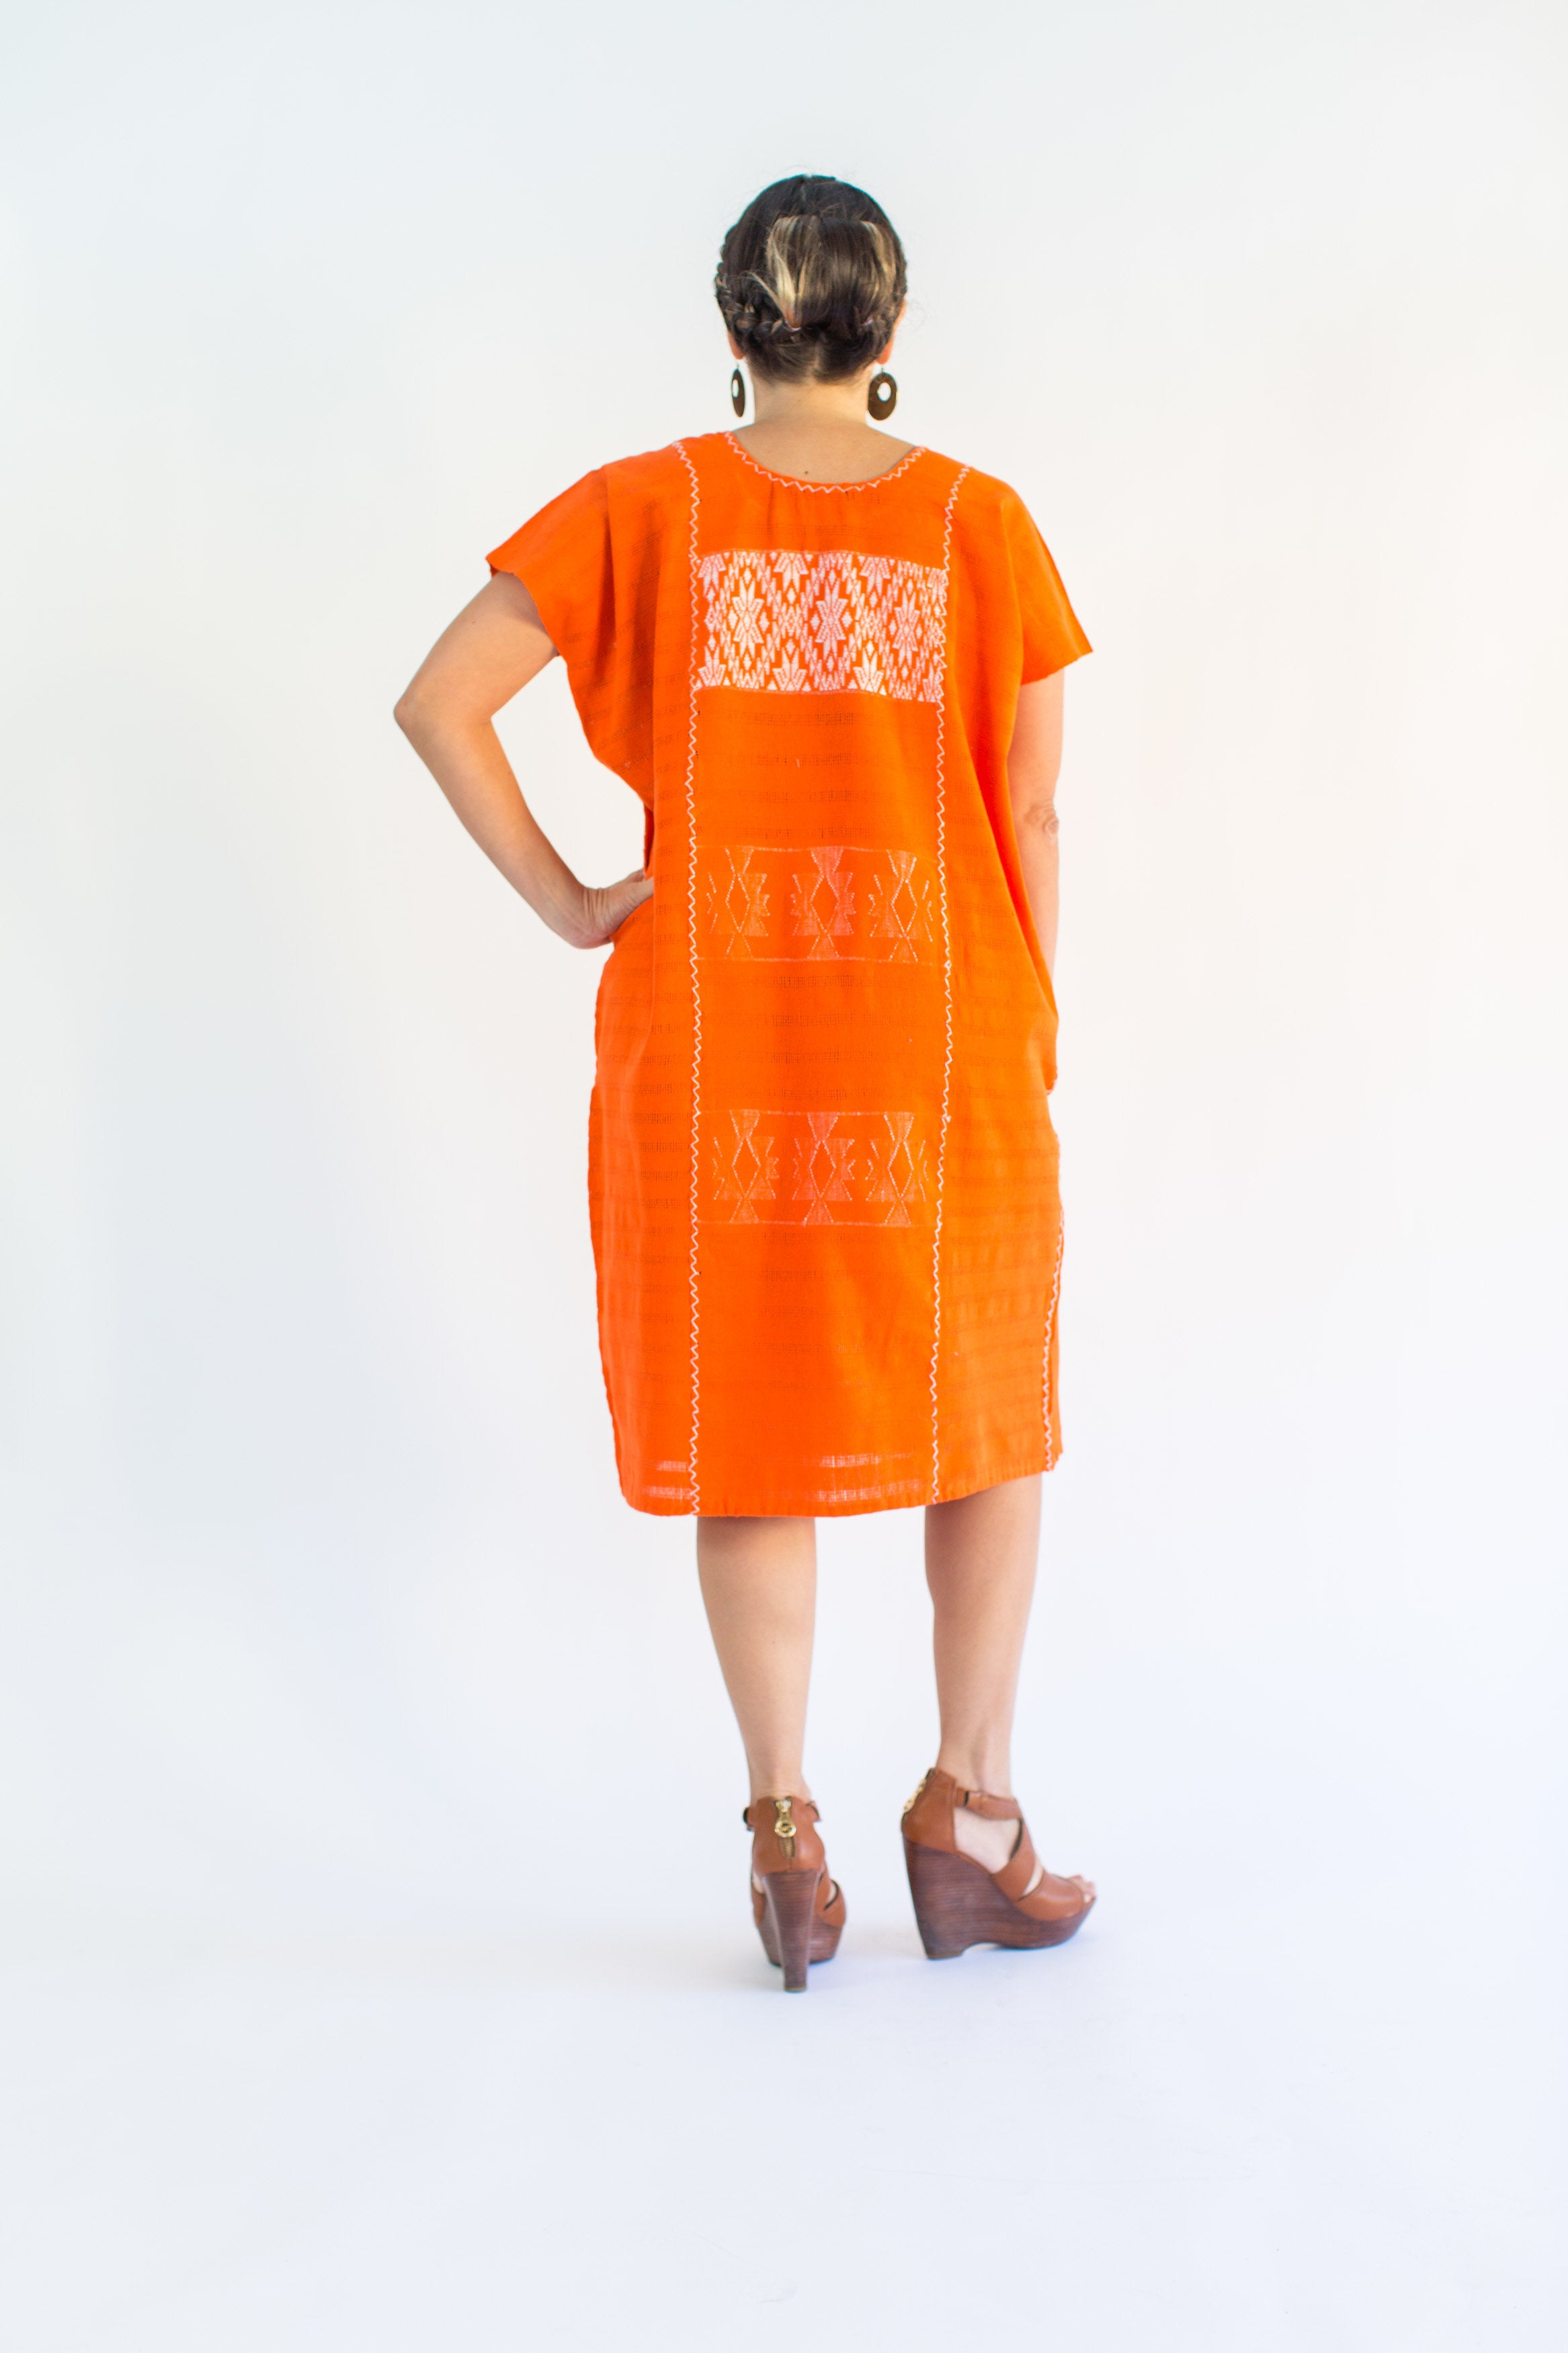 DIANA DRESS / TANGERINE WITH WHITE